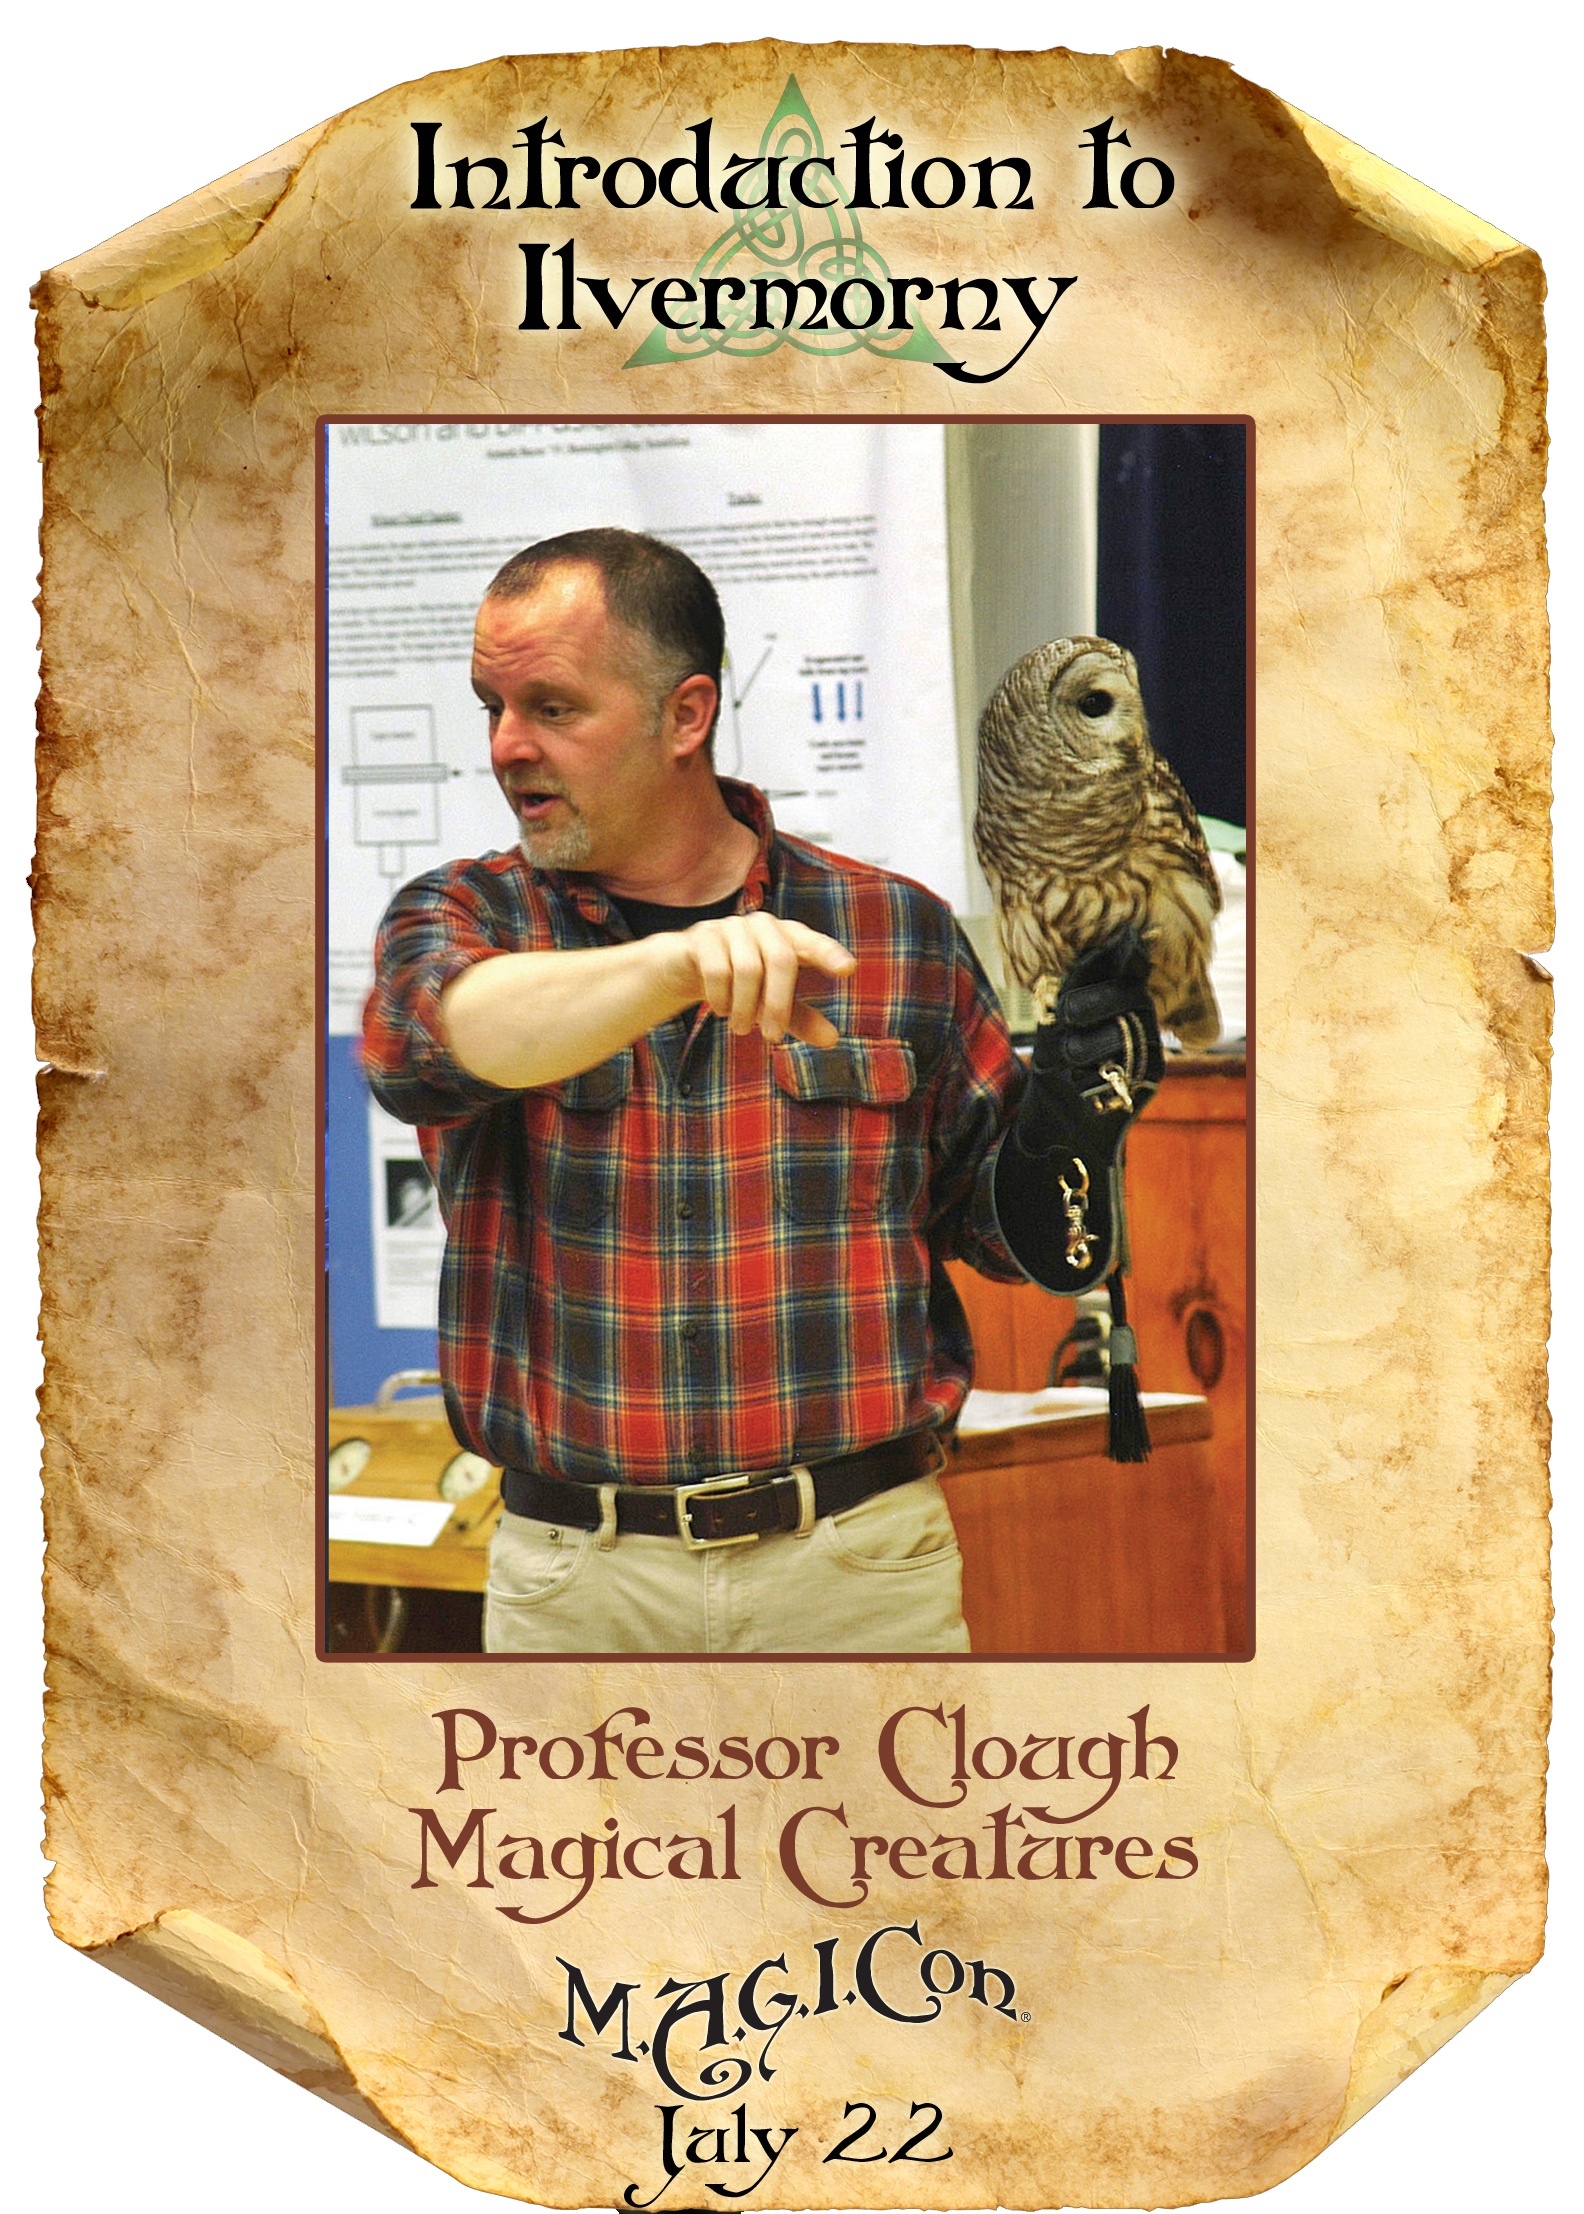 Professor Clough - Magical Creatures